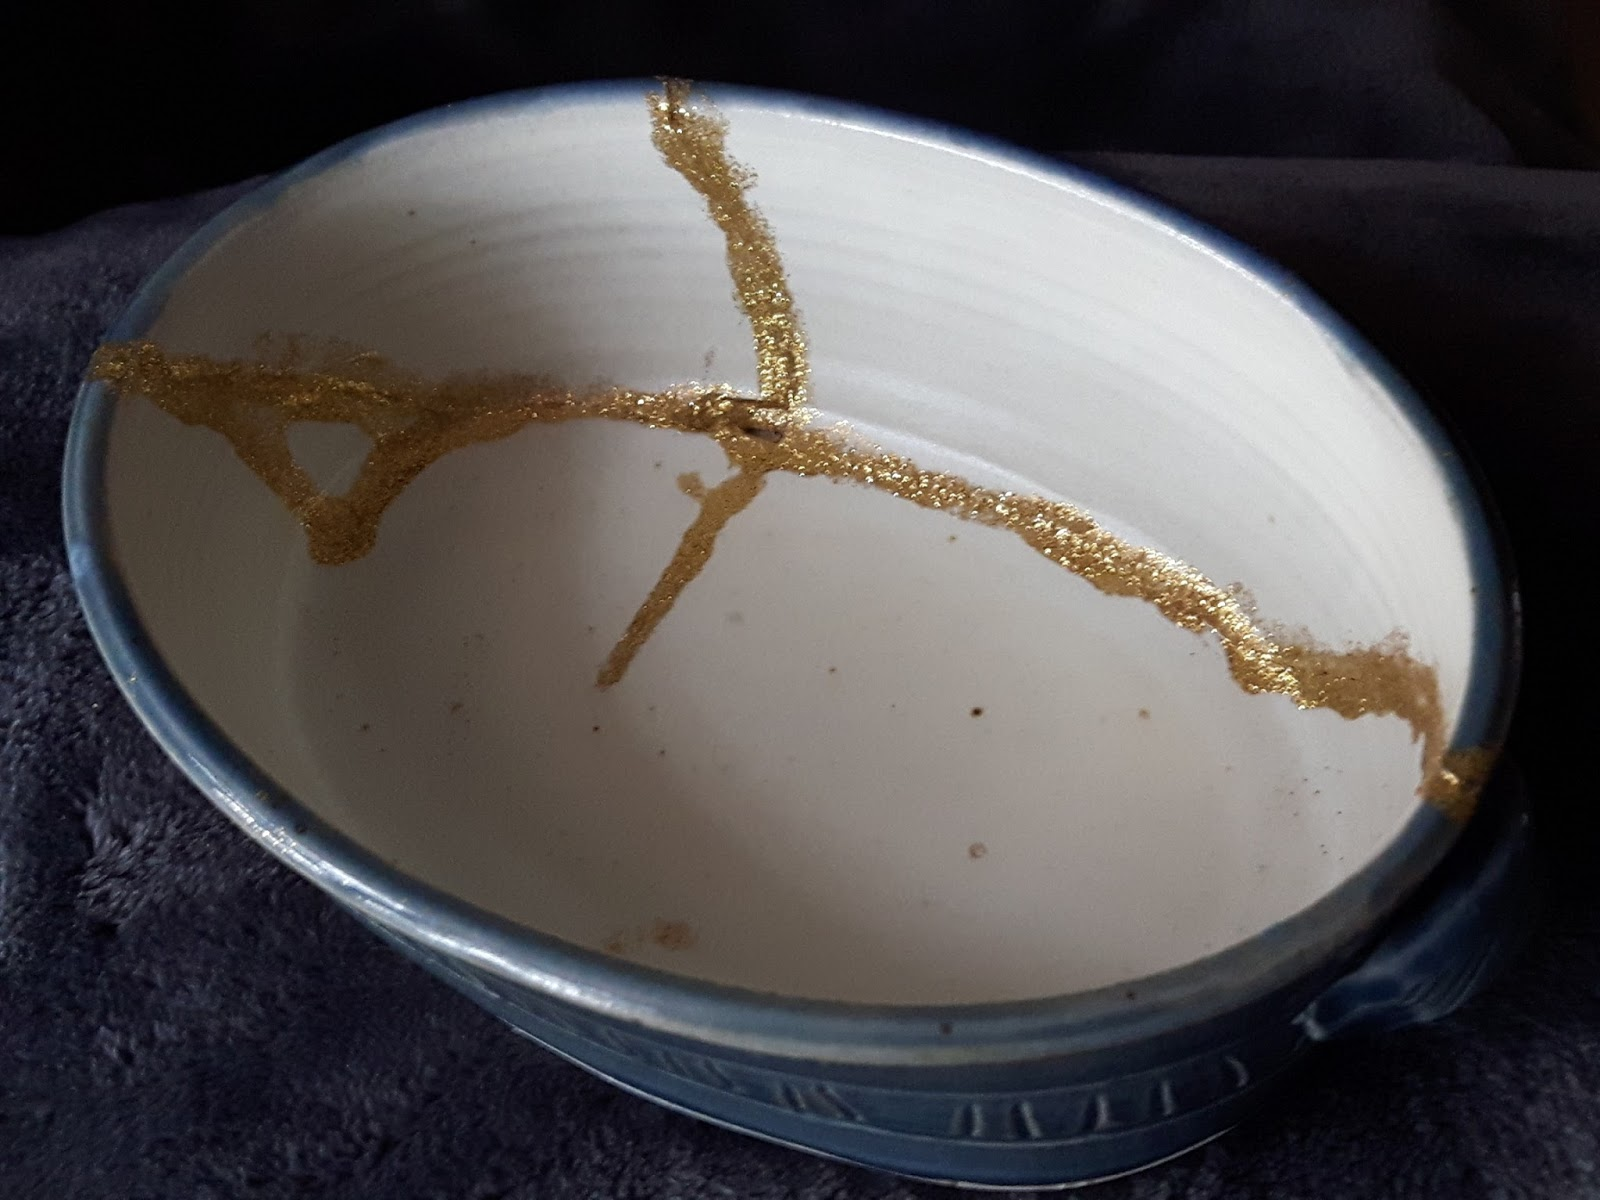 Kintsugi Driverworks Ink Publishing Kintsugi Art And Healing From Grief